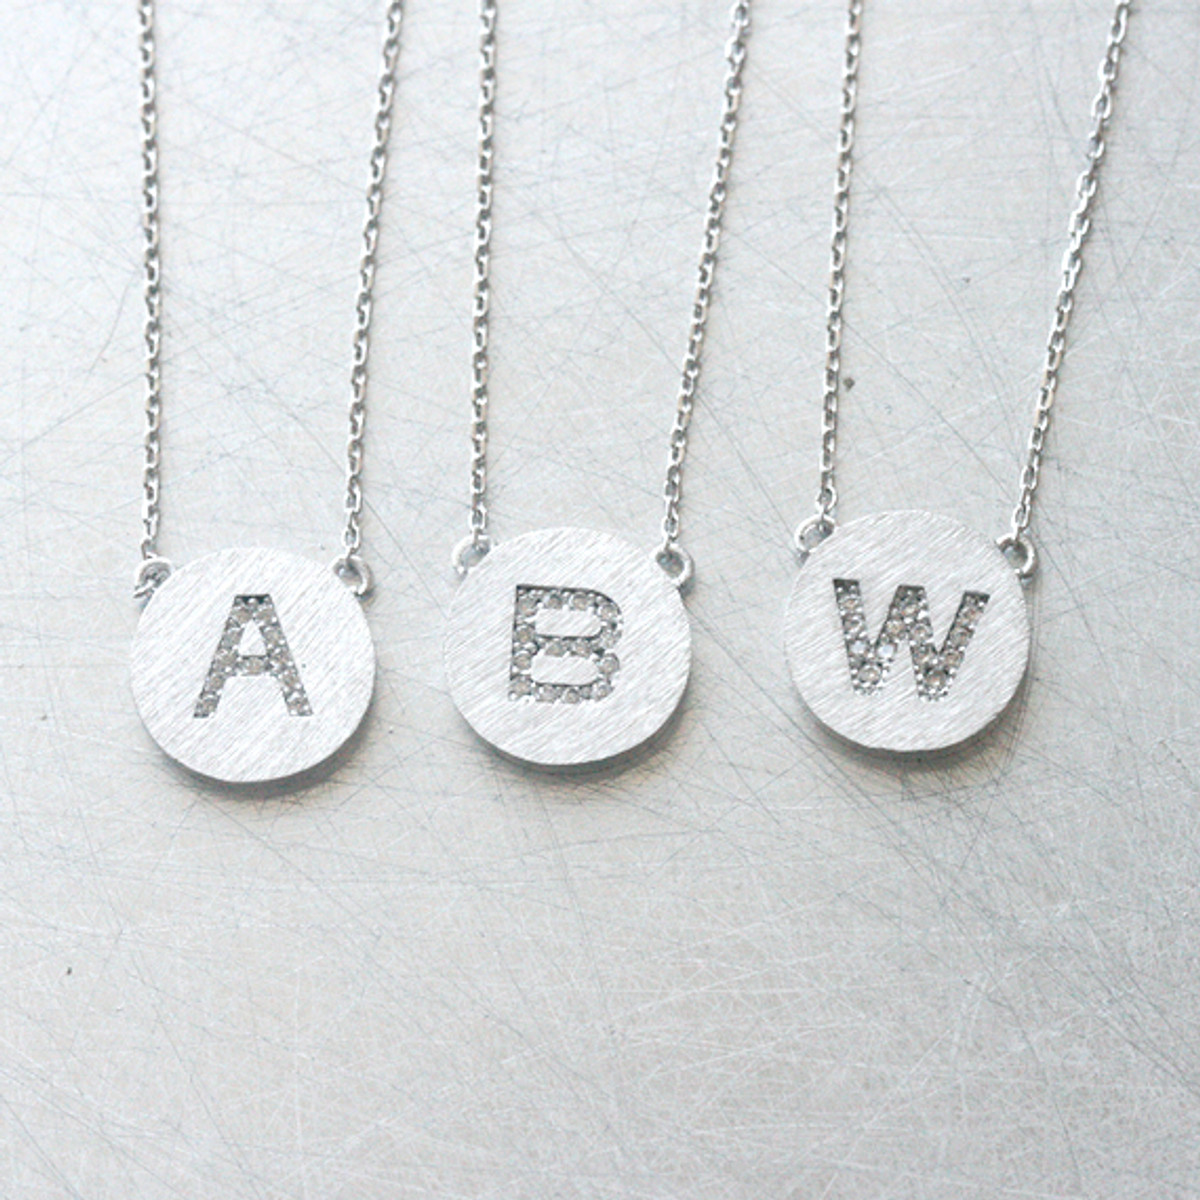 Pave white gold disc personalized initial necklace sterling silver pave white gold disc personalized initial necklace sterling silver from kellinsilver aloadofball Images